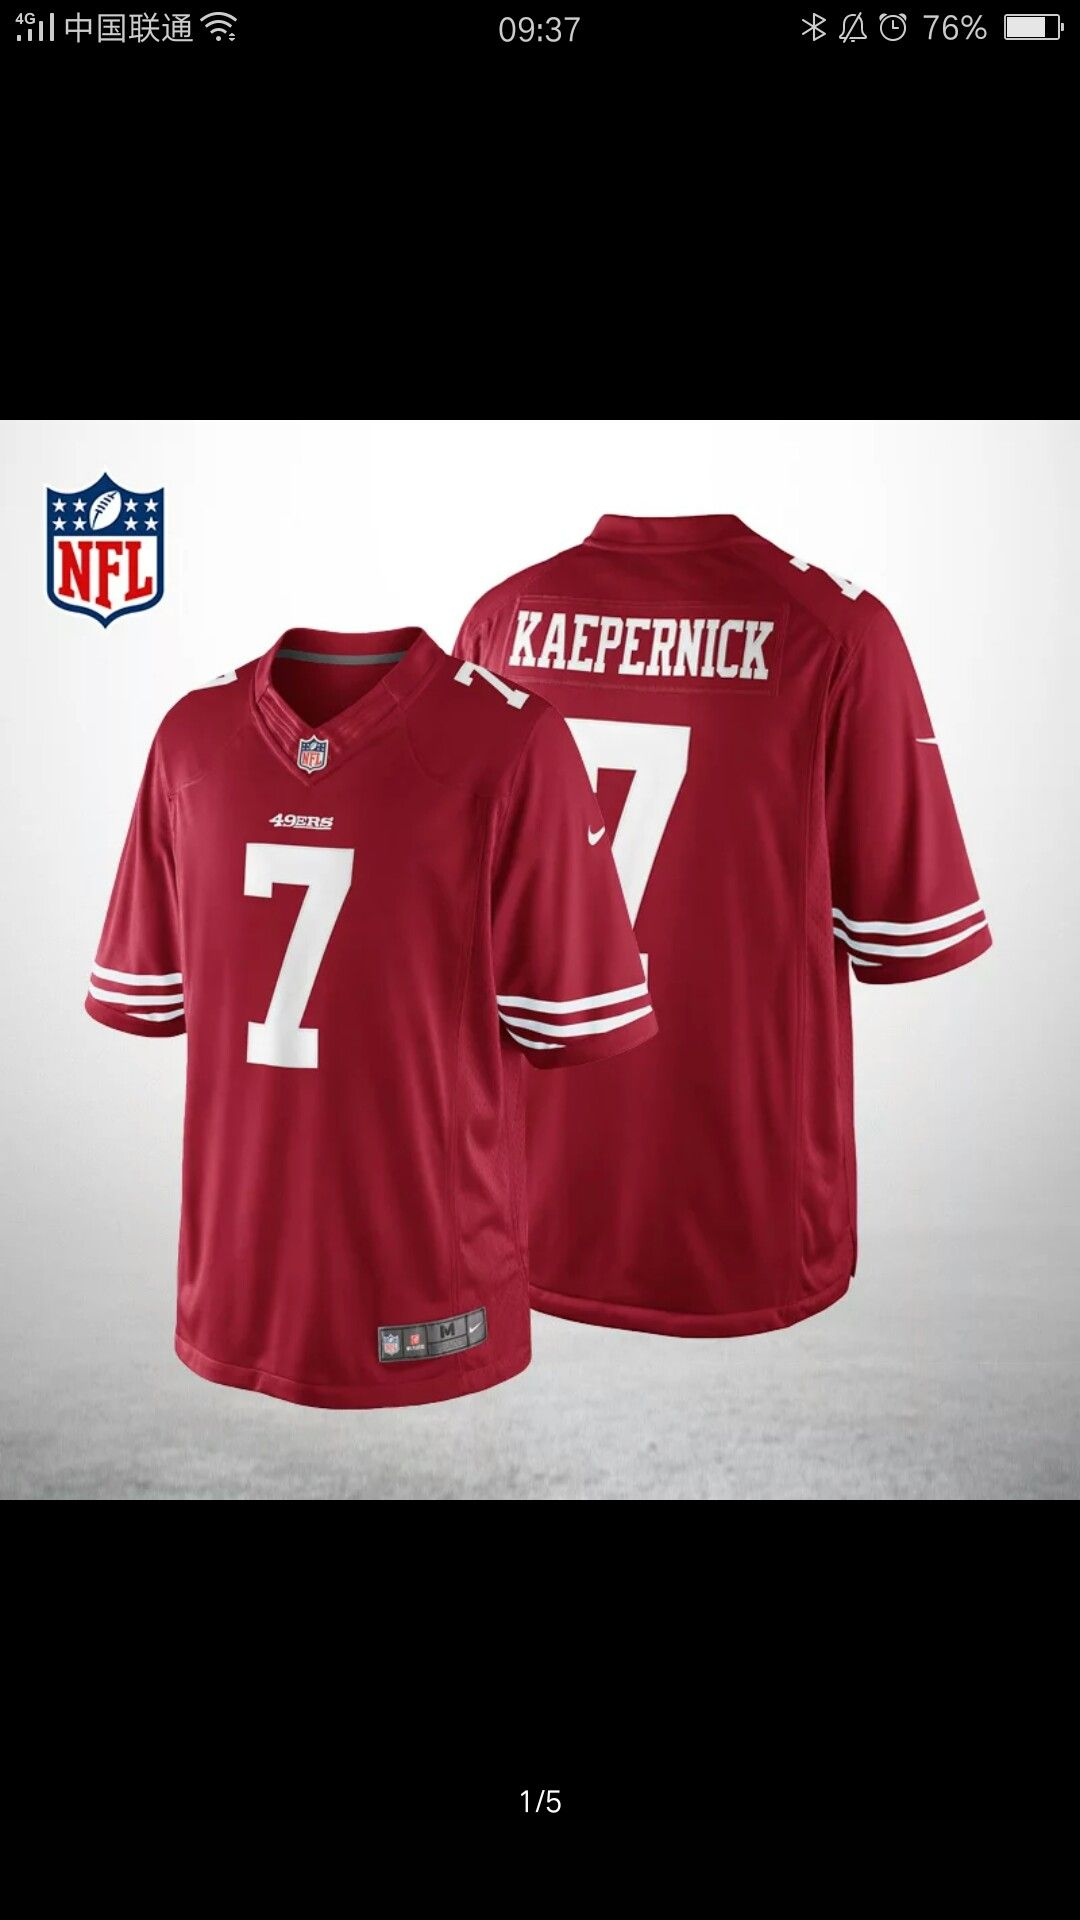 nfl authorized jerseys